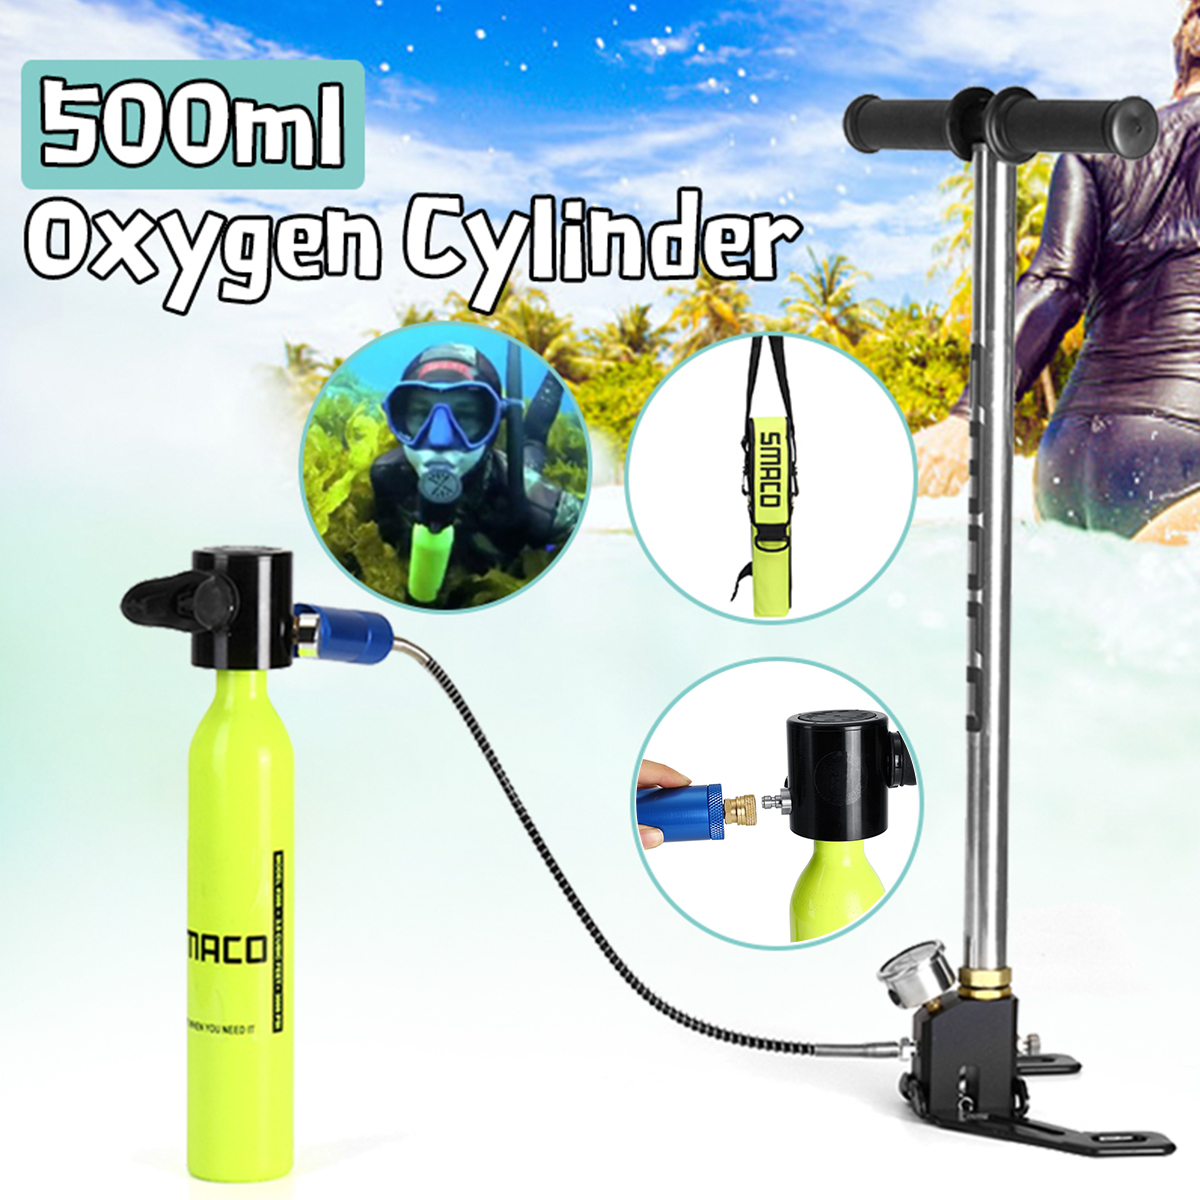 0.5L Portable Mini Scuba Oxygen Cylinder Air Tanks Diving Equipment For Snorkeling Underwater Breathing Pump And Respirator Bag